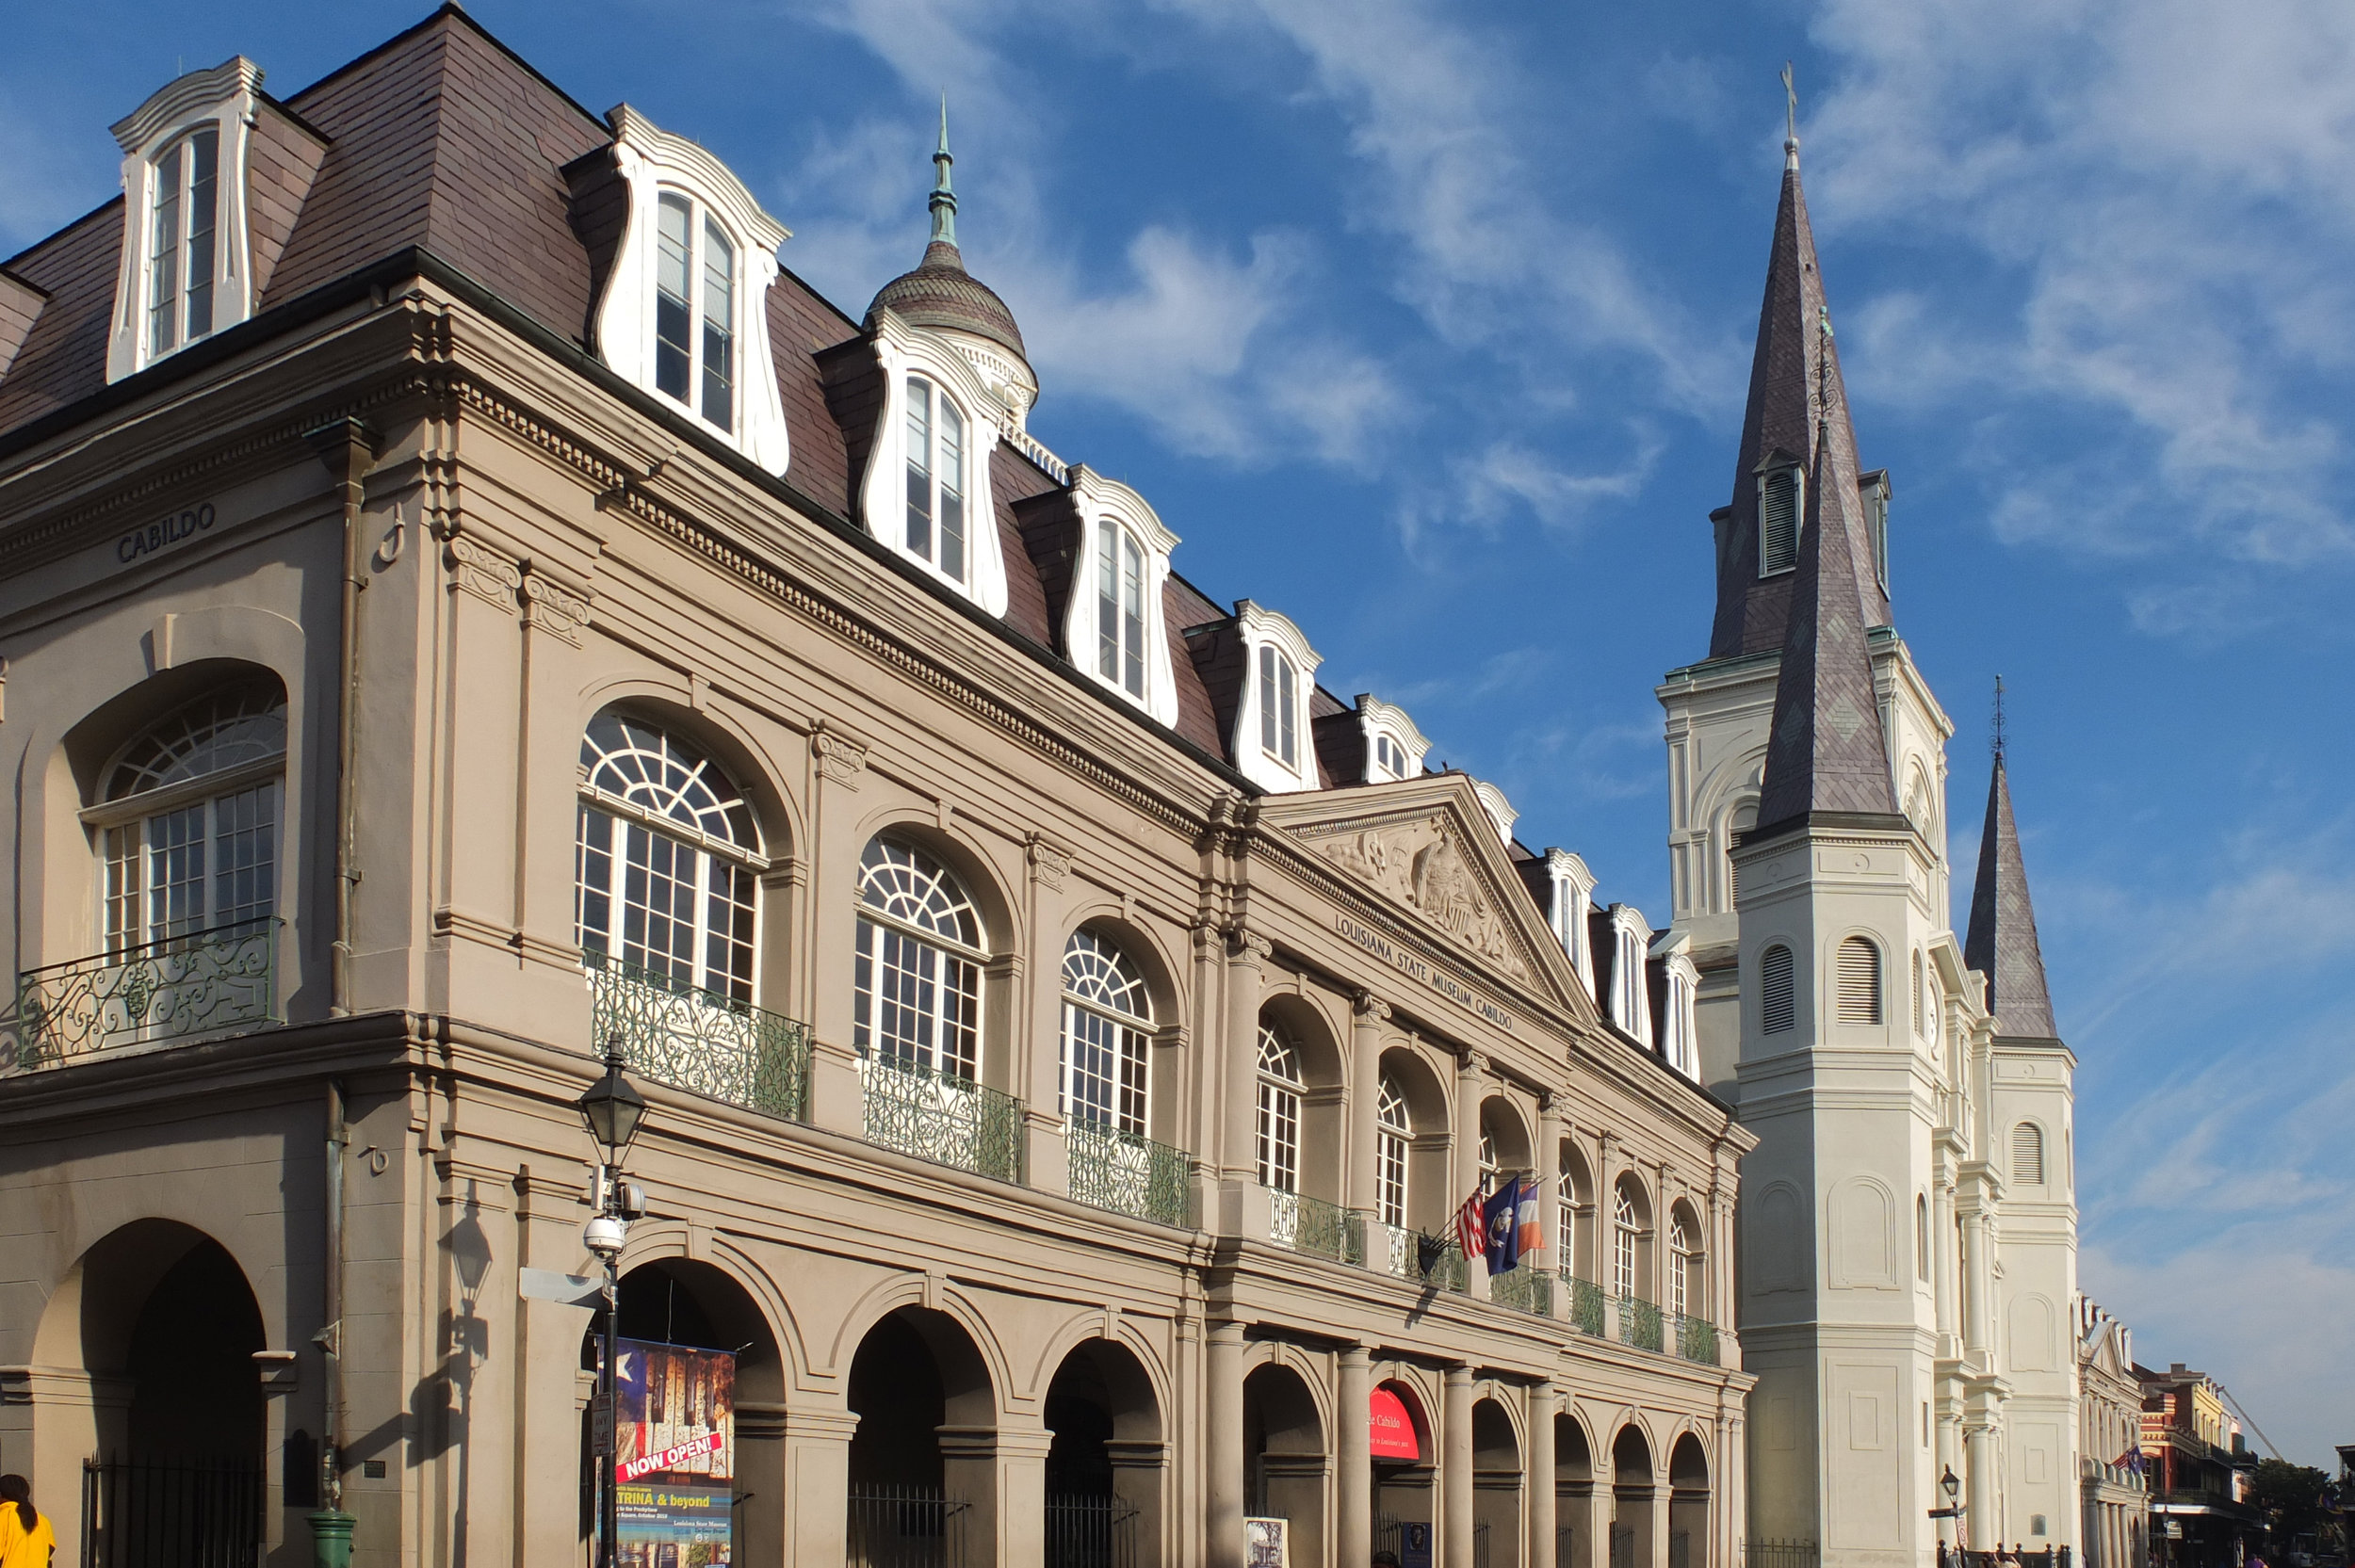 We Secure Museums - The Louisiana State Museum Cabildo chose Active Solutions to secure its New Orleans Tricentennial exhibition.